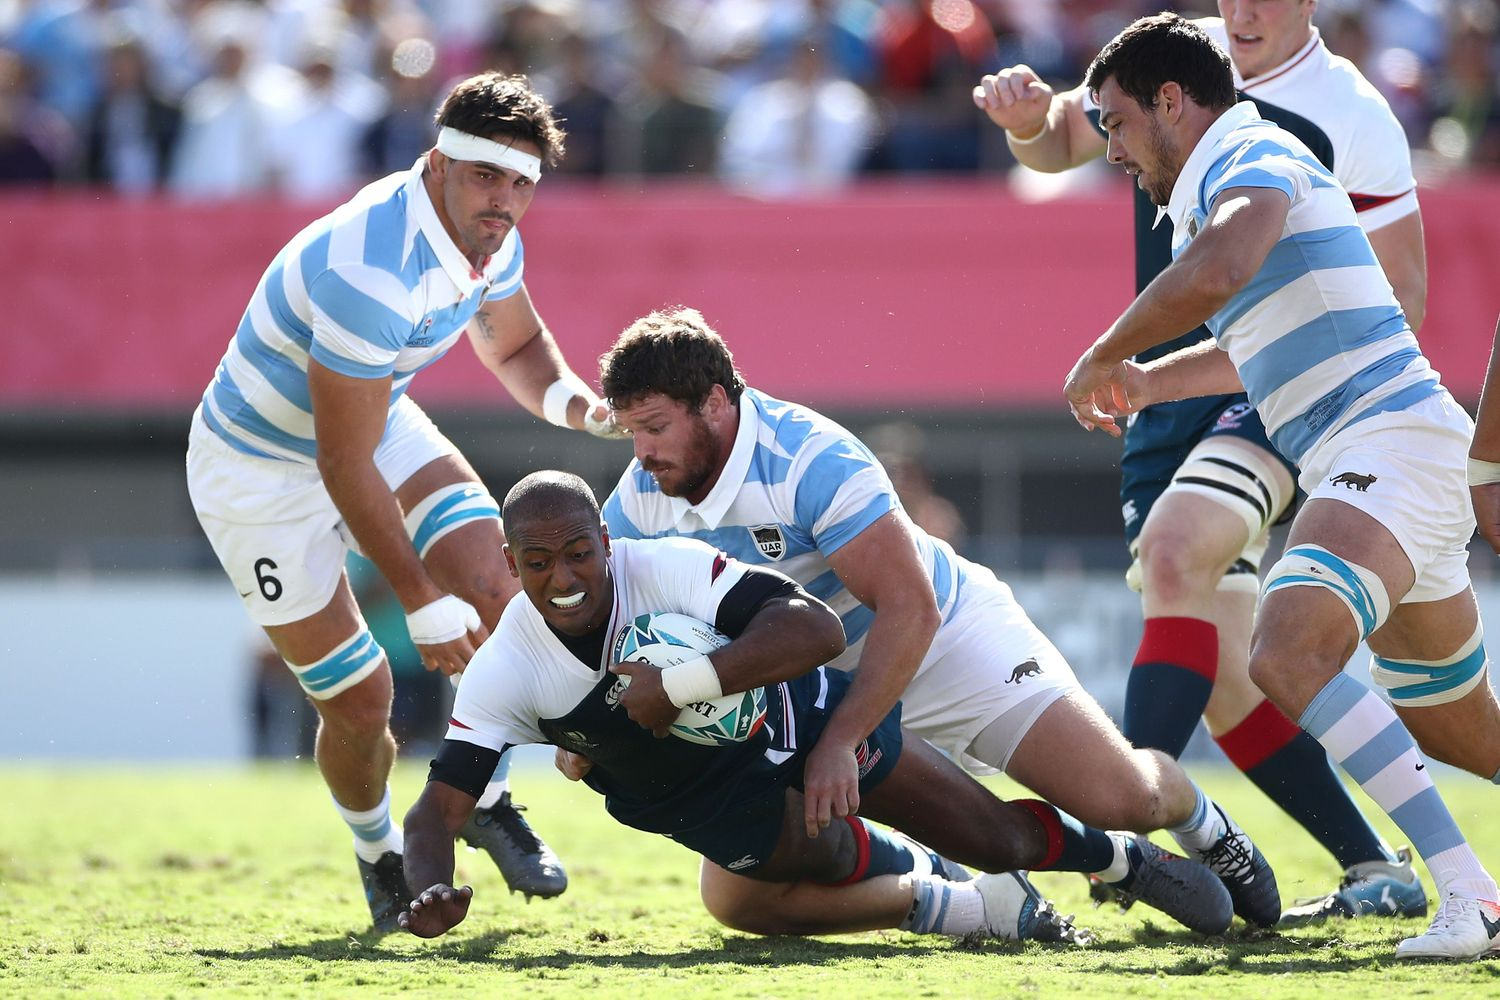 Argentina vs EE.UU. - Rugby World Cup 2019: Grupo C